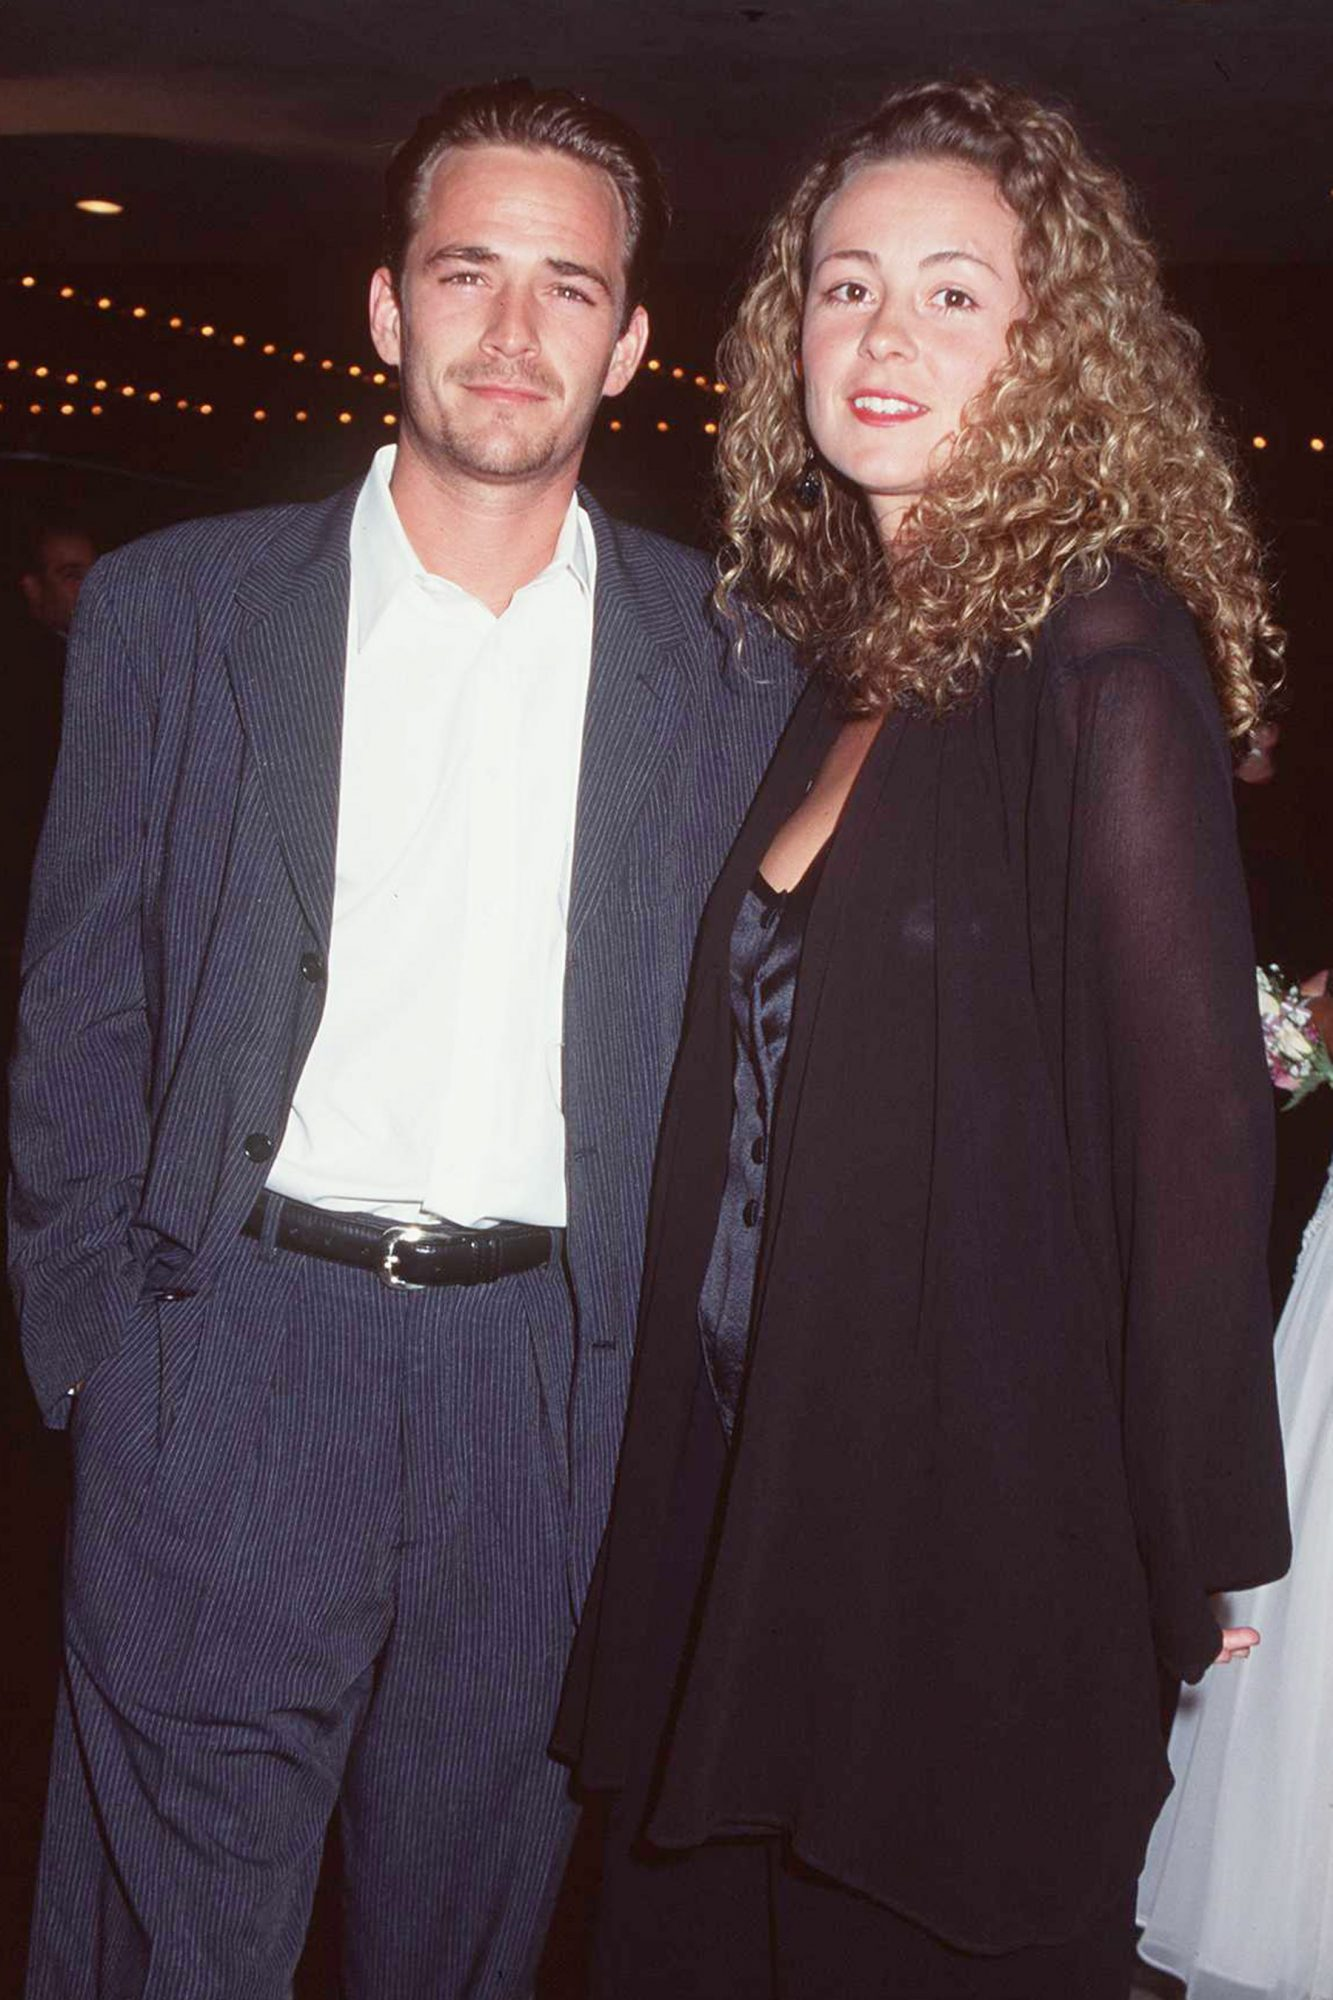 """4/12/95 Westwood, CA. Luke Perry with his wife, Minnie Sharp at the premiere of """"Beauty And The Beas"""